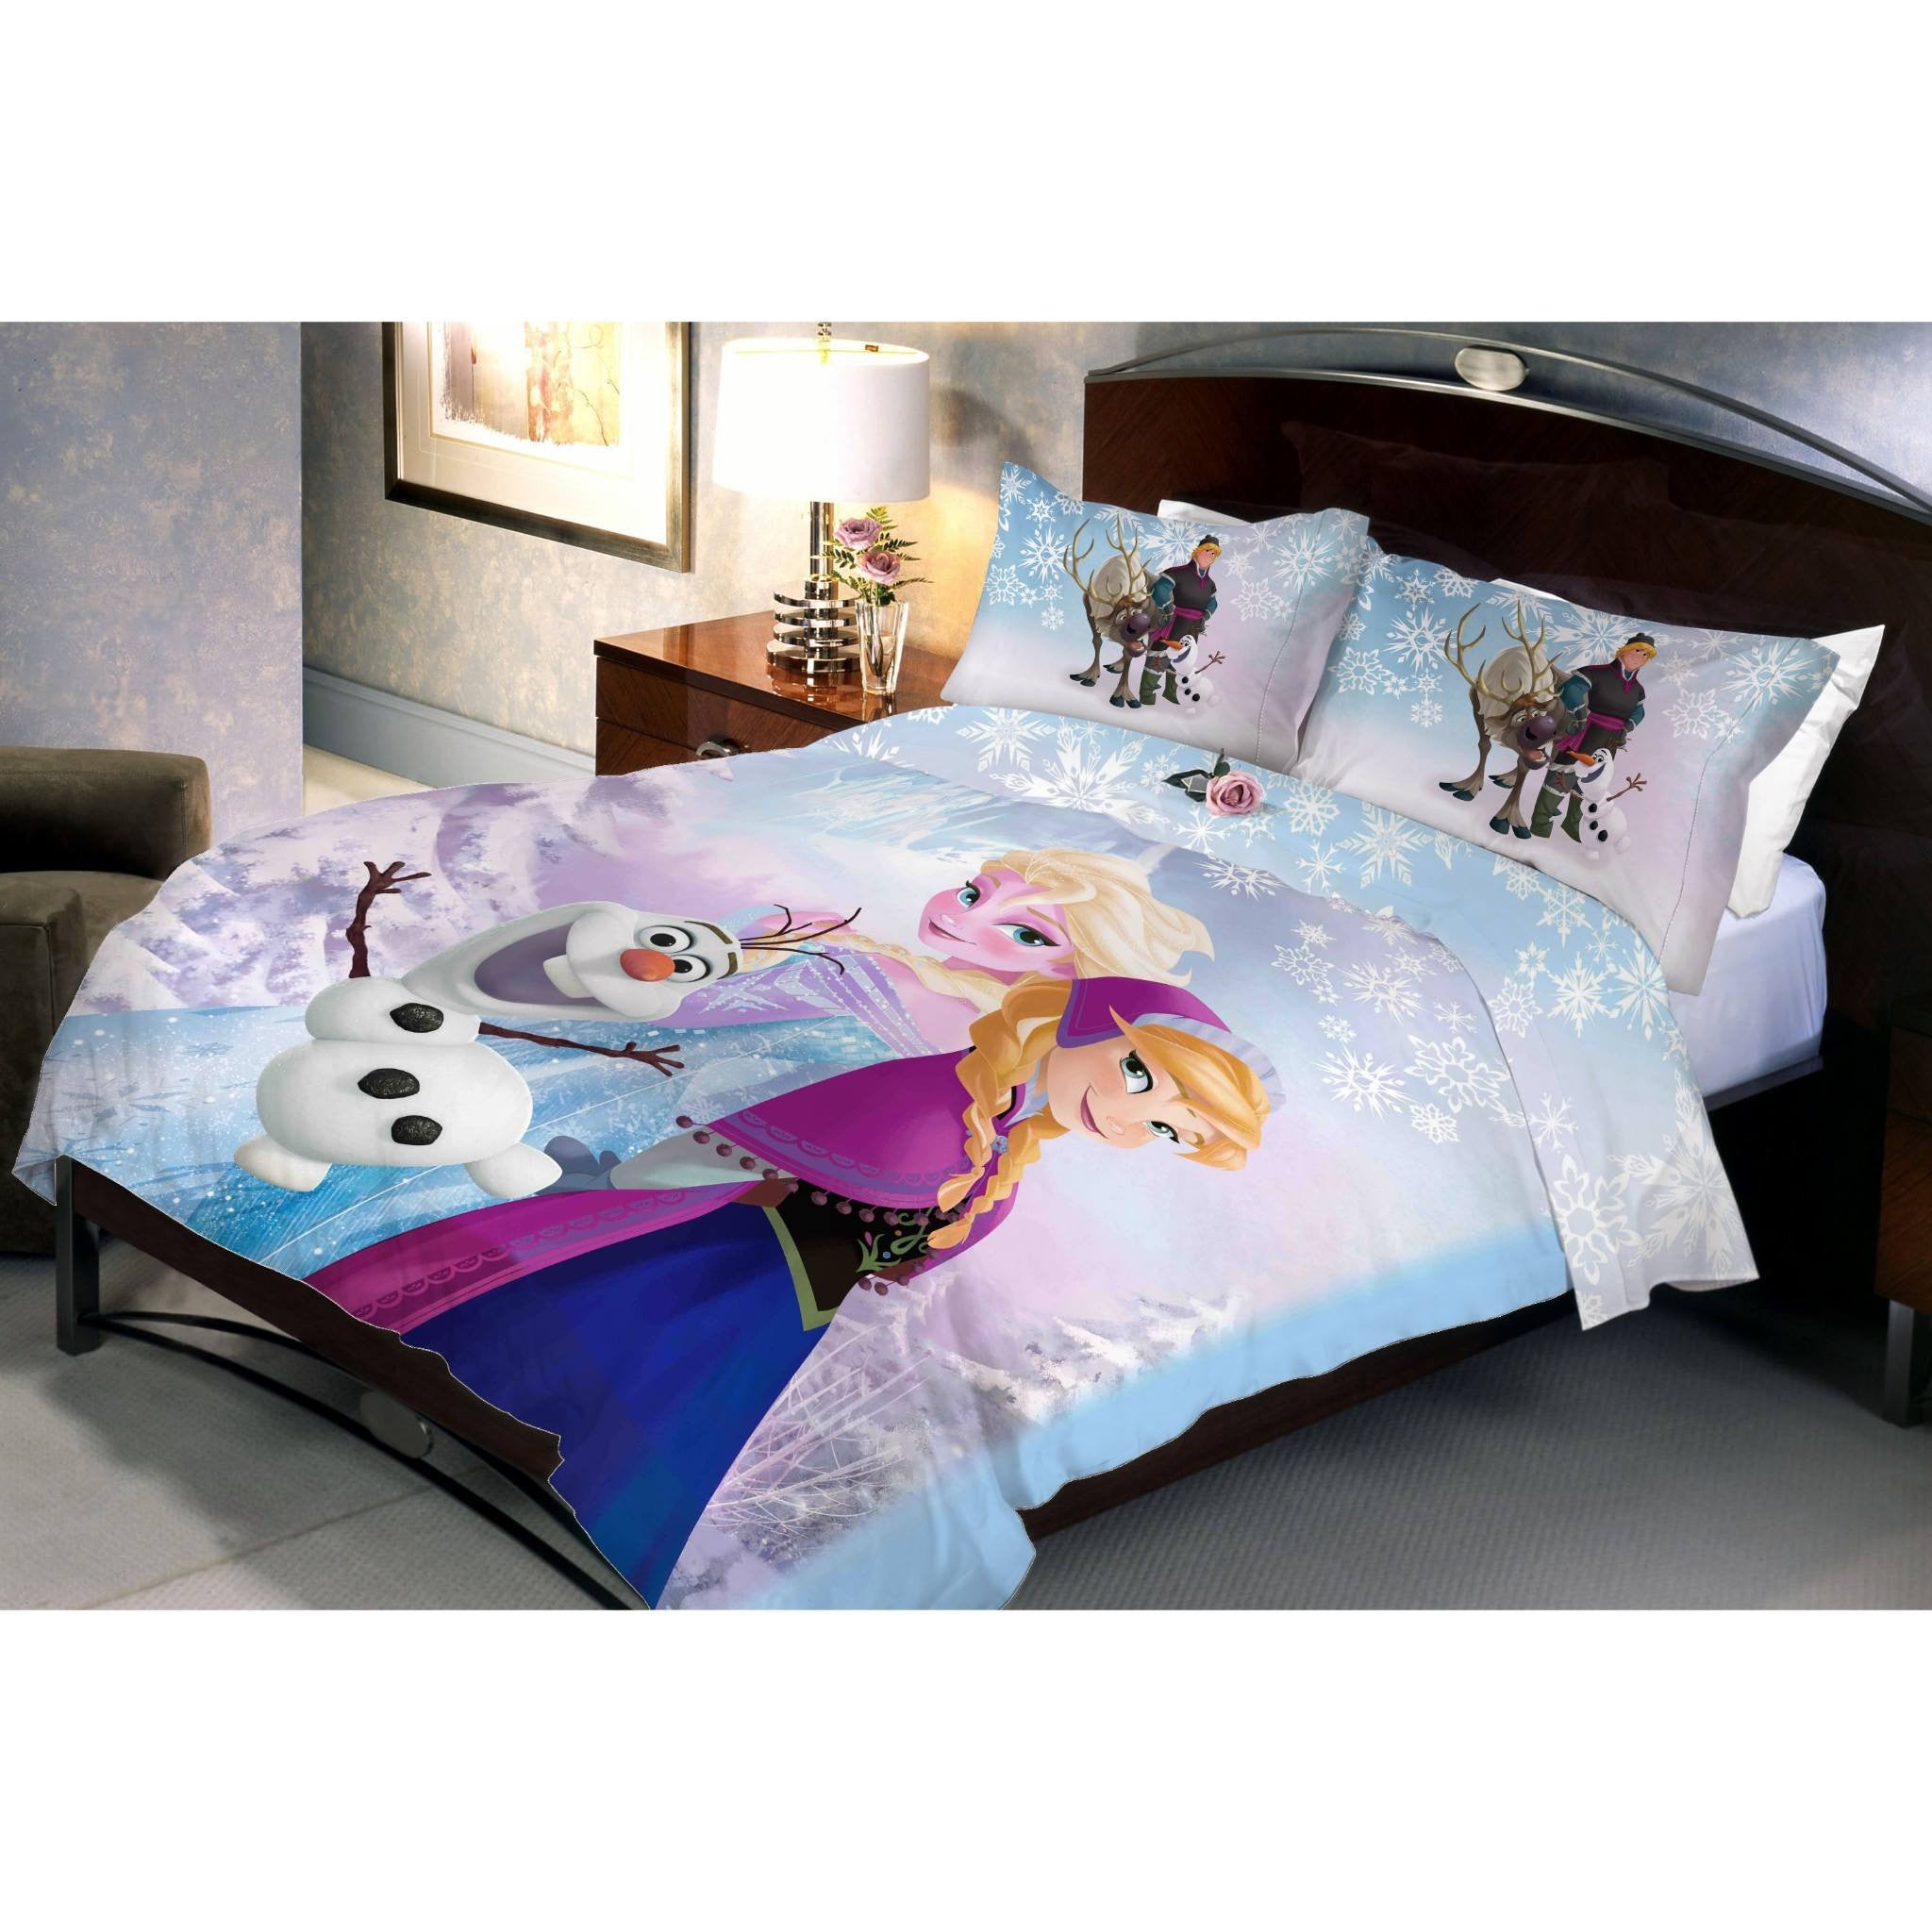 Frozen Family Double Bed Sheet And Pillow Covers - Über Urban Bedsheet